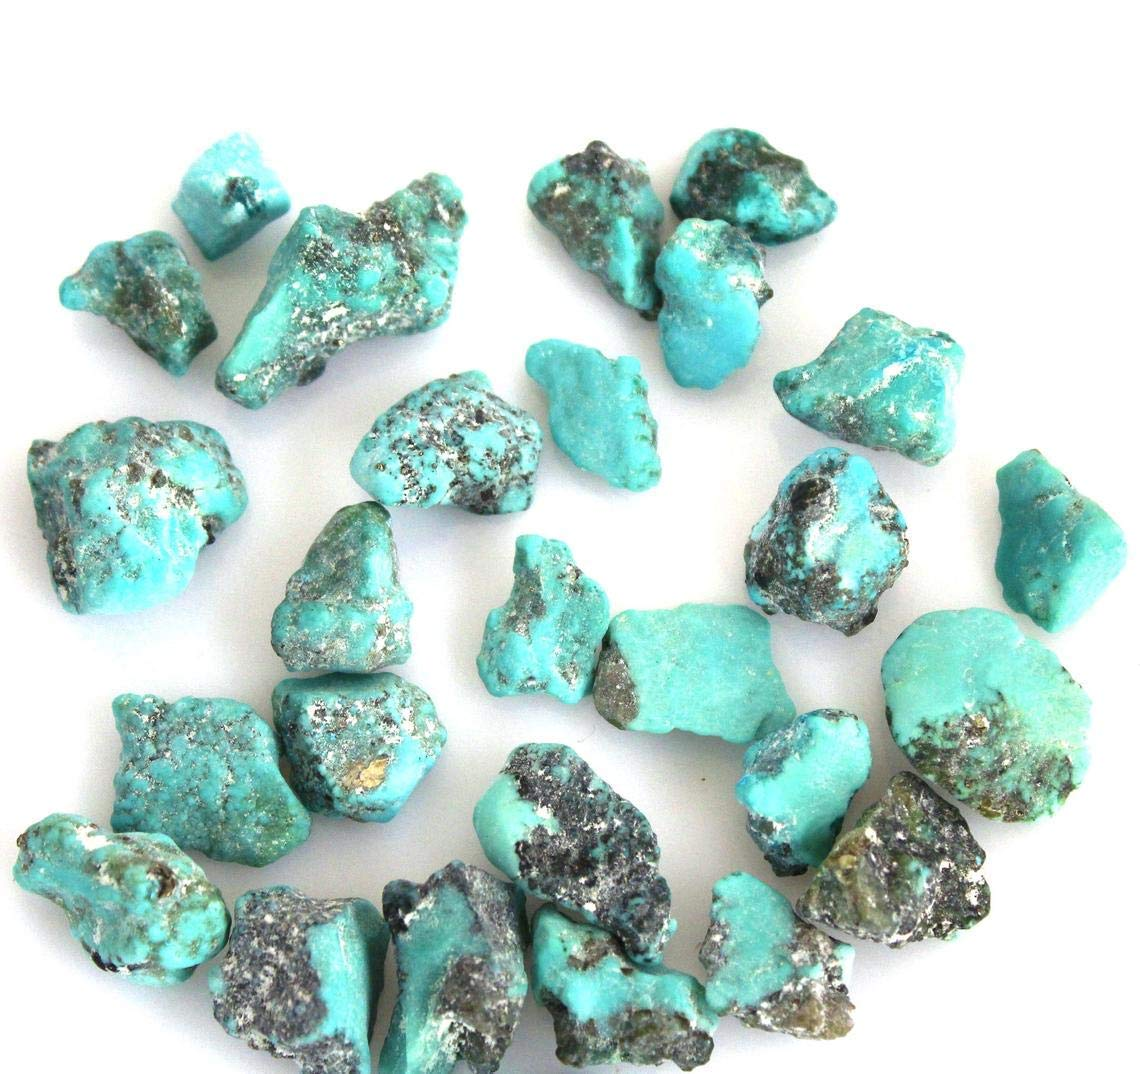 Gempires Natural Raw Turquoise Gemstone Loose Making Jewelry Sale Soldering price Ge